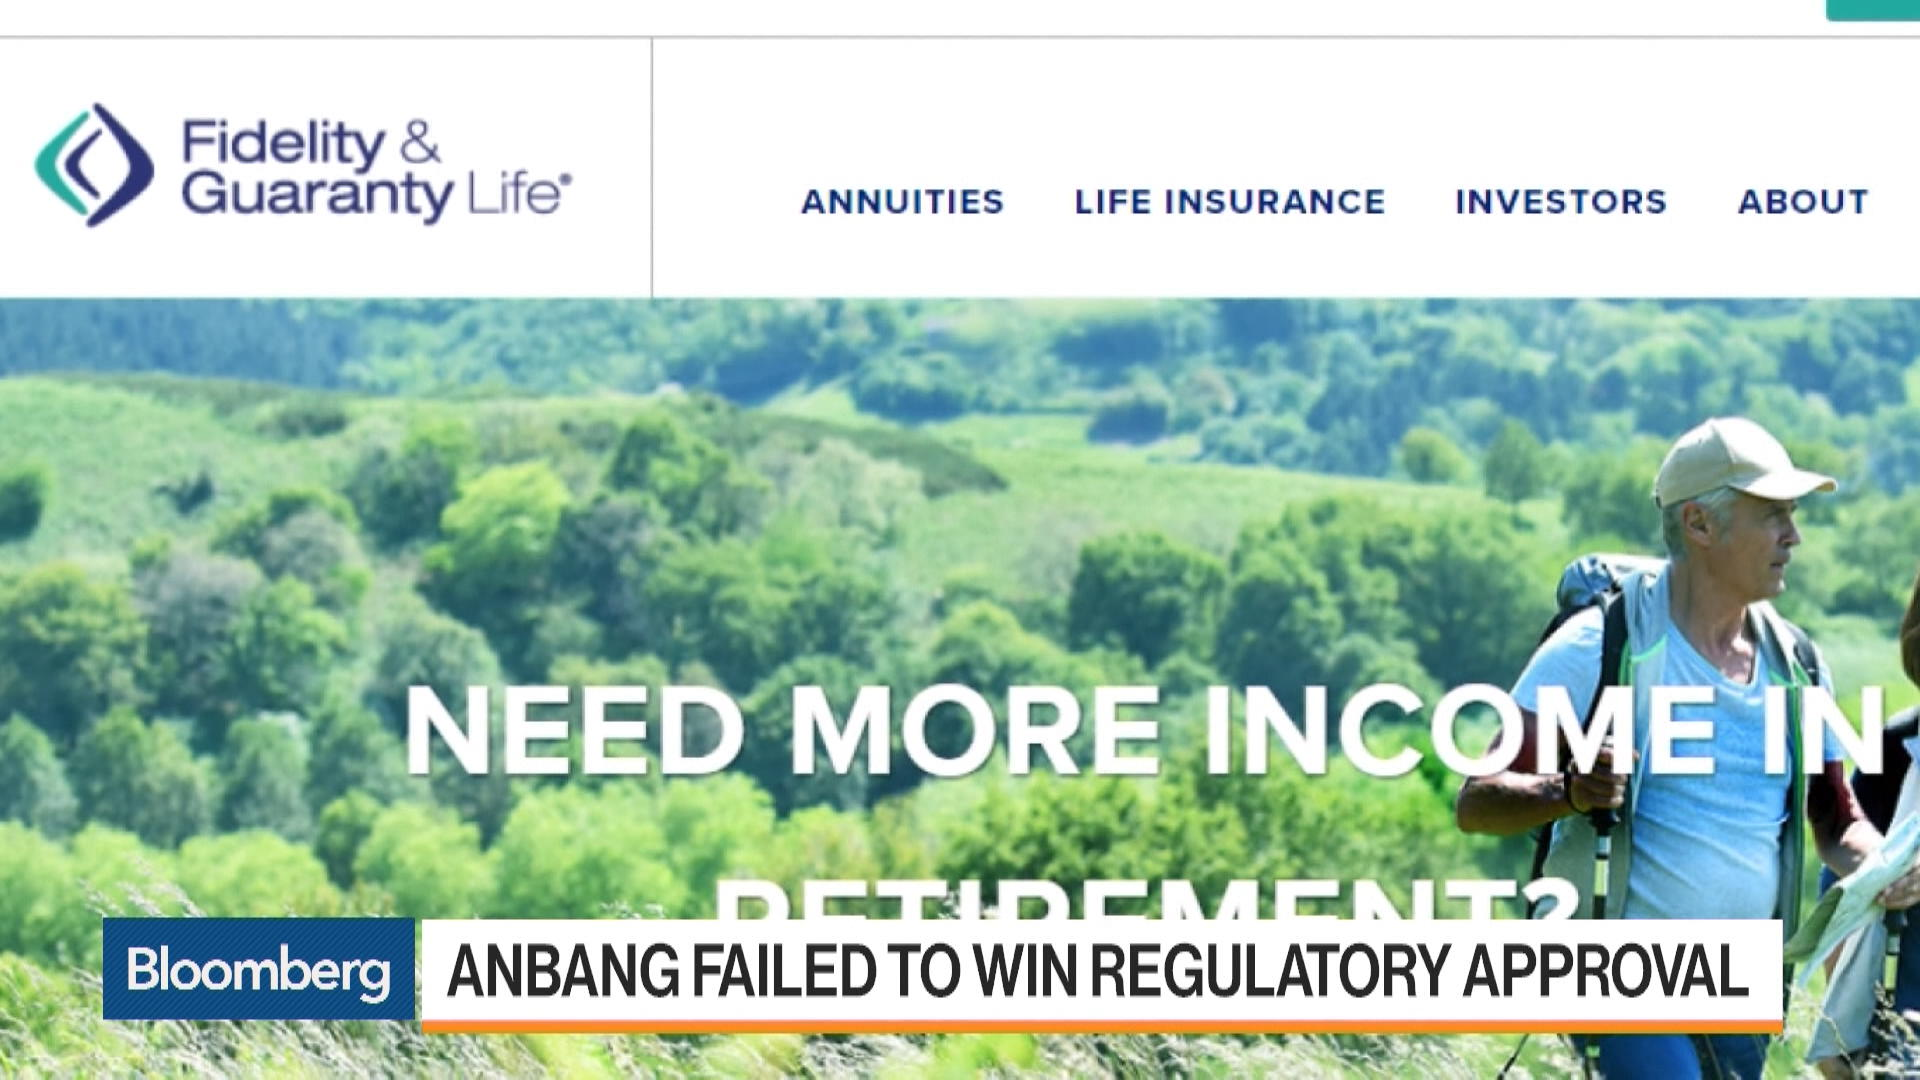 FGL:New York Stock Quote - Fidelity & Guaranty Life - Bloomberg ...